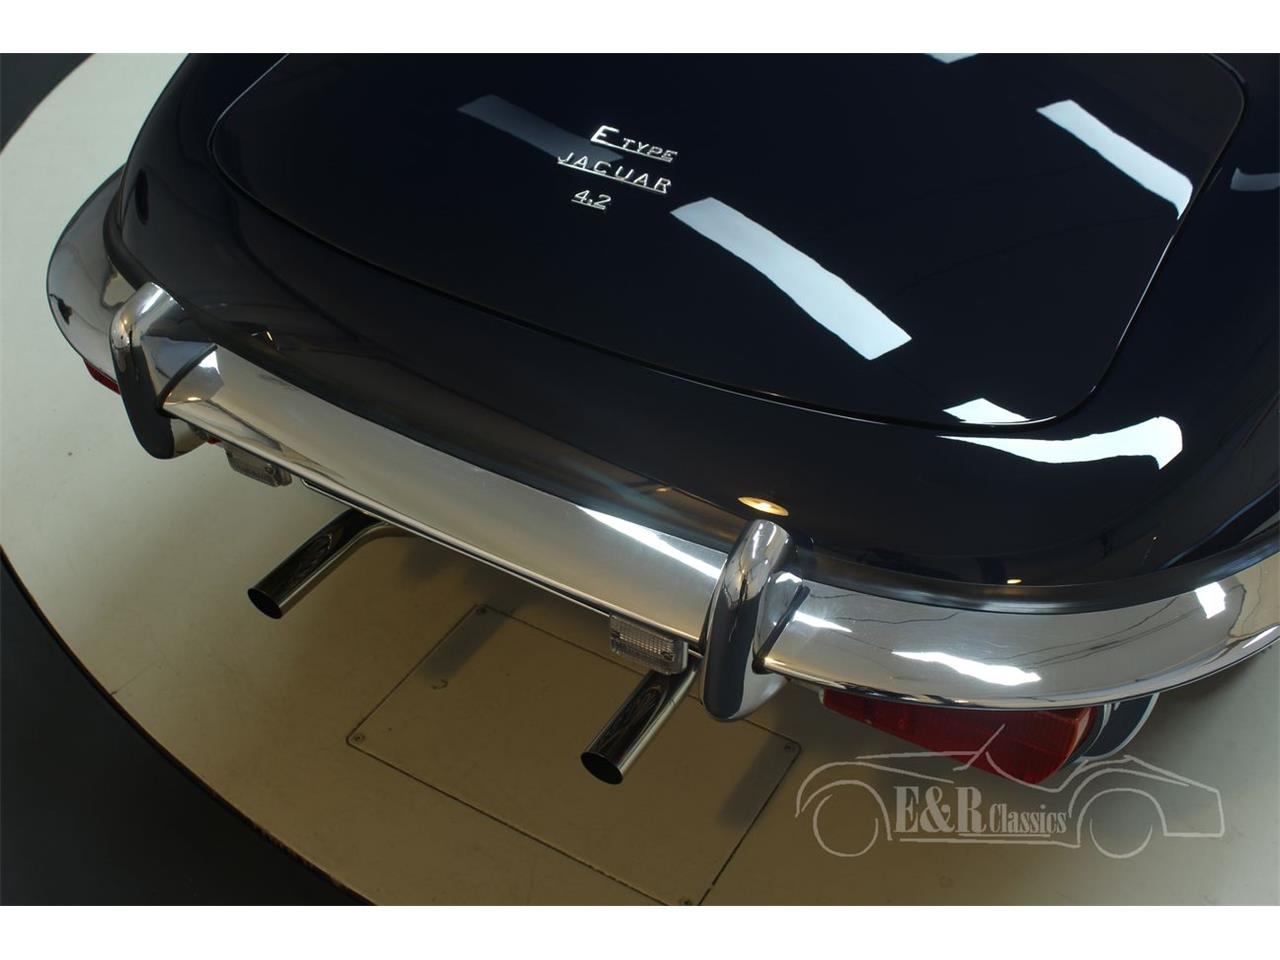 Large Picture of Classic 1969 Jaguar E-Type located in Noord-Brabant - $139,400.00 Offered by E & R Classics - Q45K